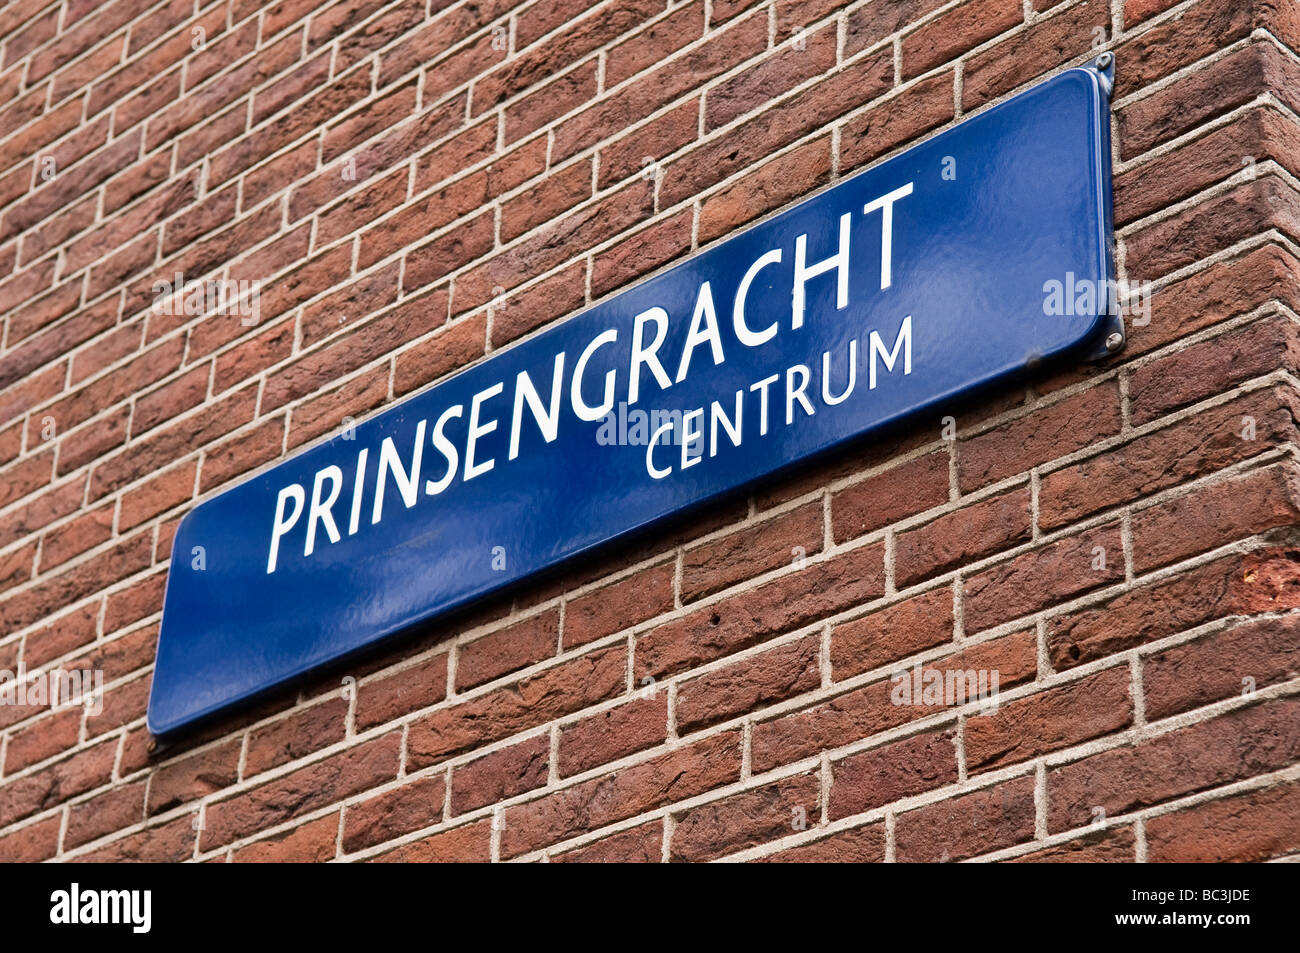 Street sign for the Prinsengracht - Stock Image